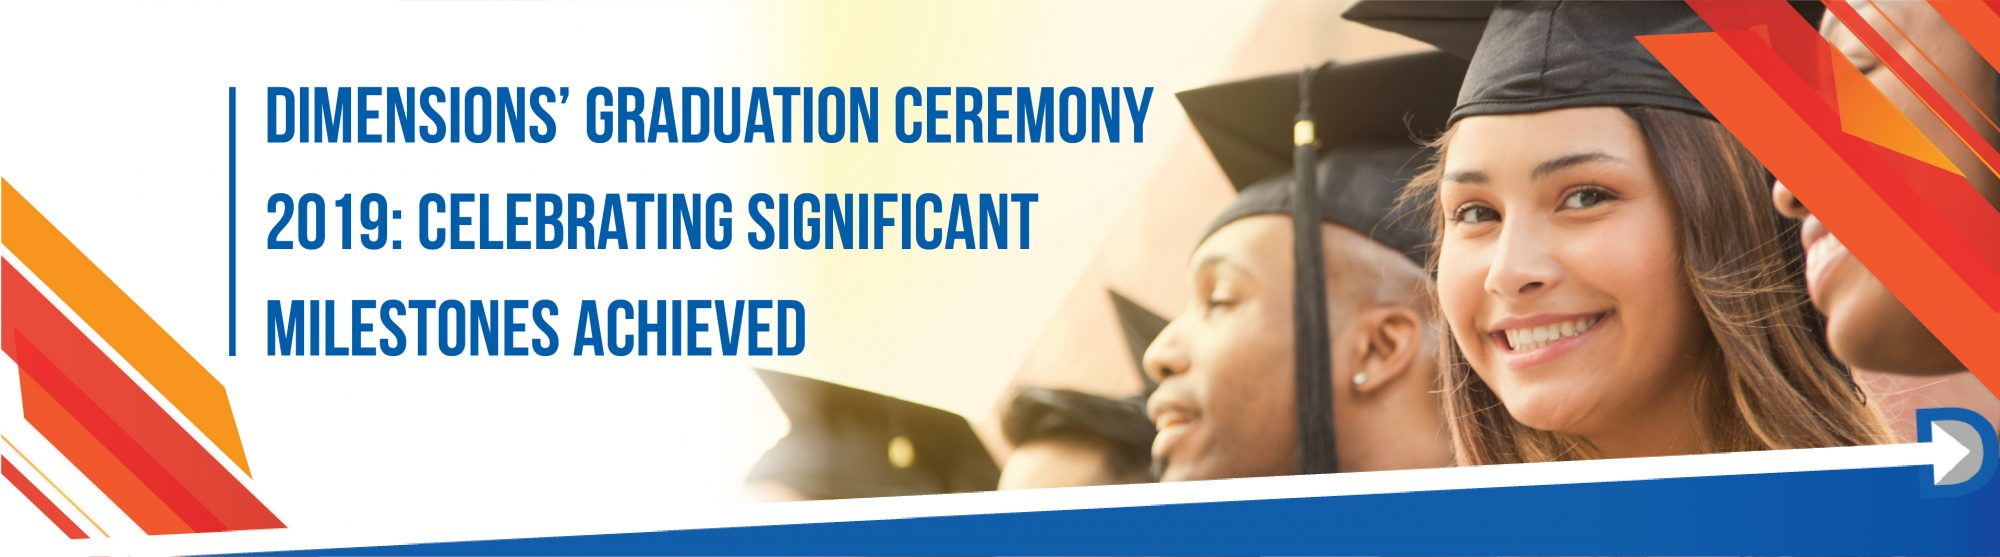 DIMENSIONS' GRADUATION CEREMONY 2019: CELEBRATING SIGNIFICANT MILESTONES ACHIEVED